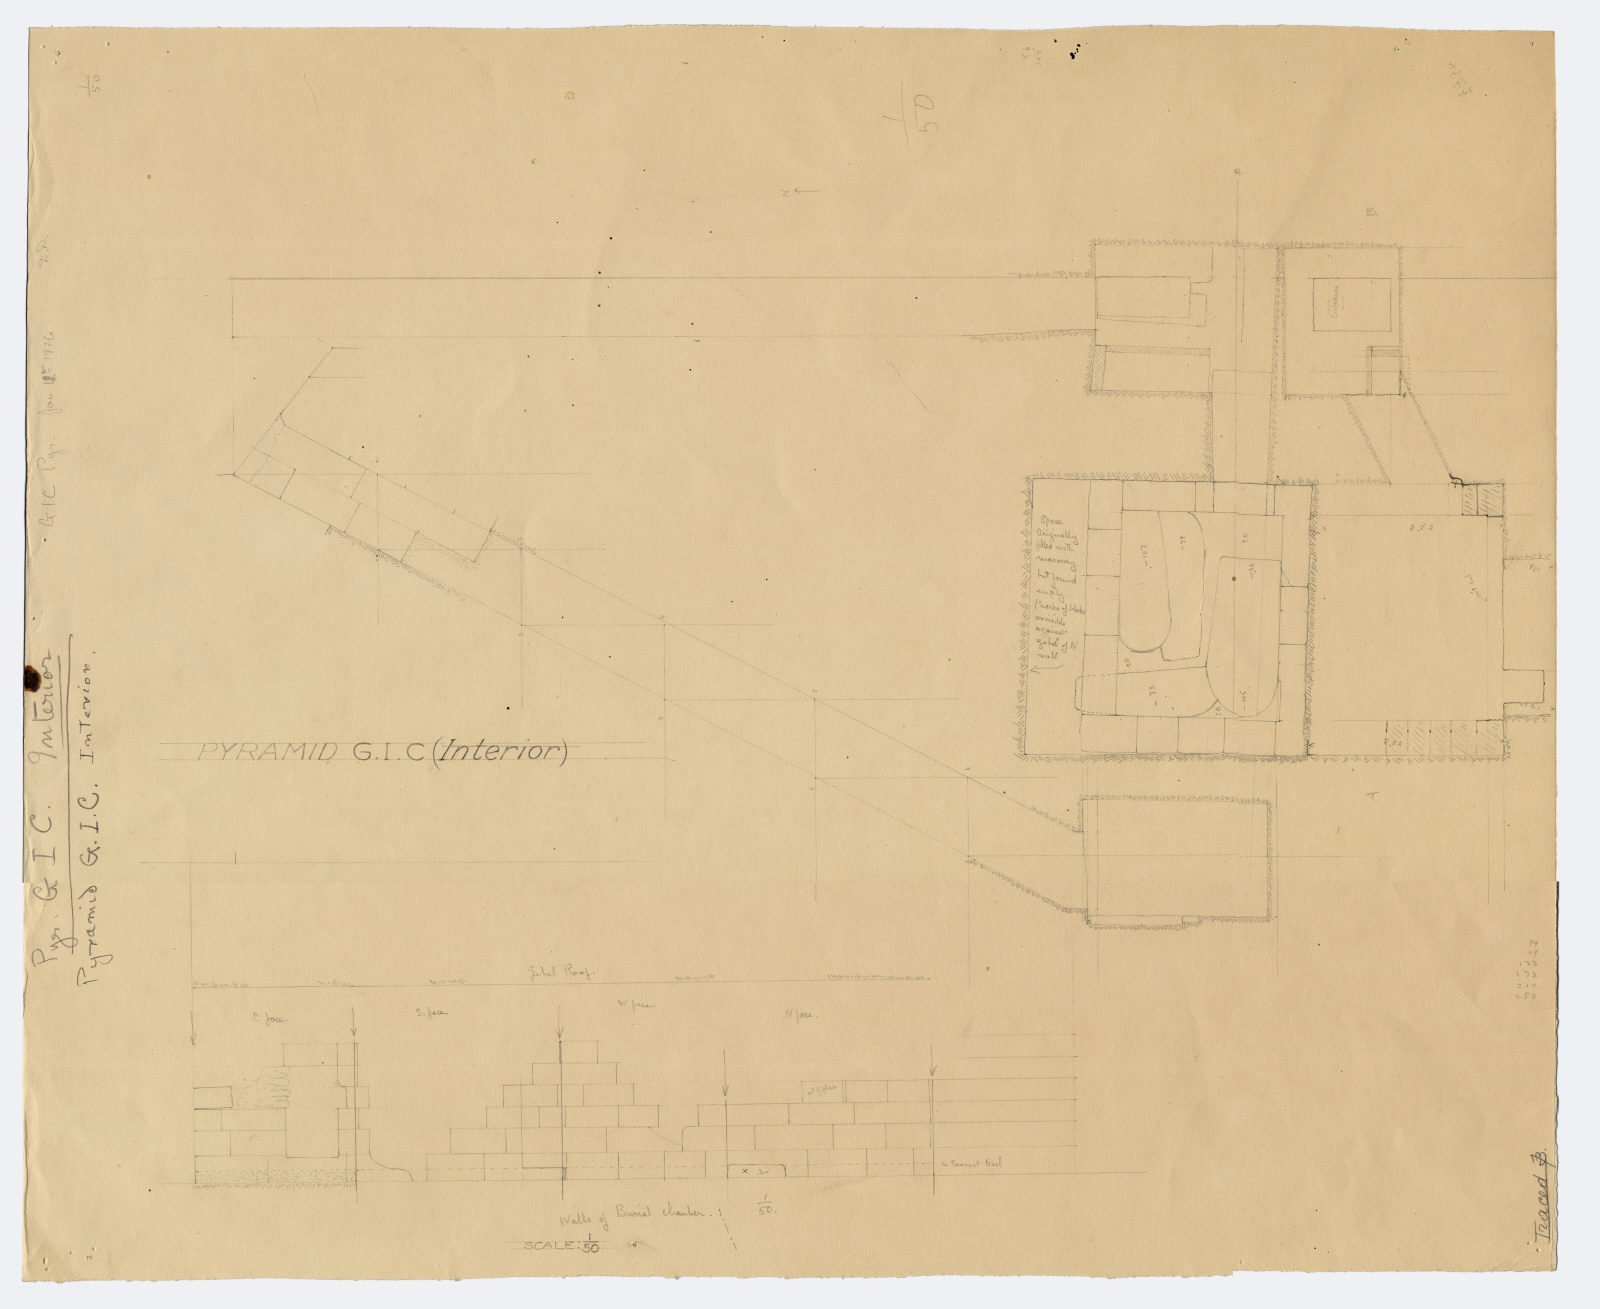 Maps and plans: G I-c burial chamber, Plan and sections